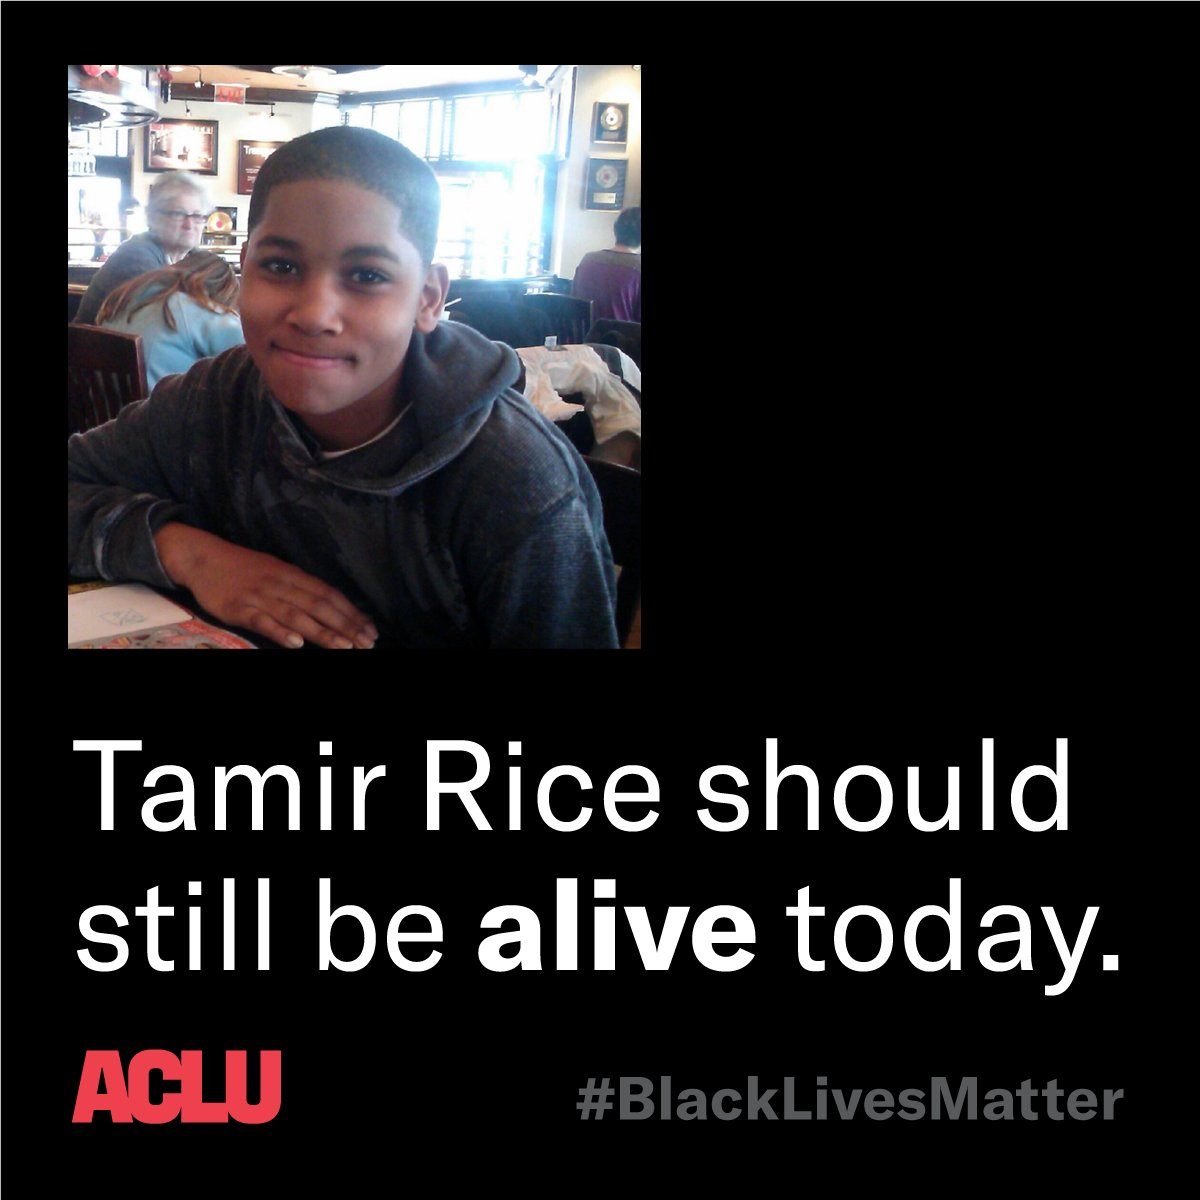 Six years ago today, 12-year-old Tamir Rice was killed by police.   Tamir should have turned 18 years old this year. #BlackLivesMatter